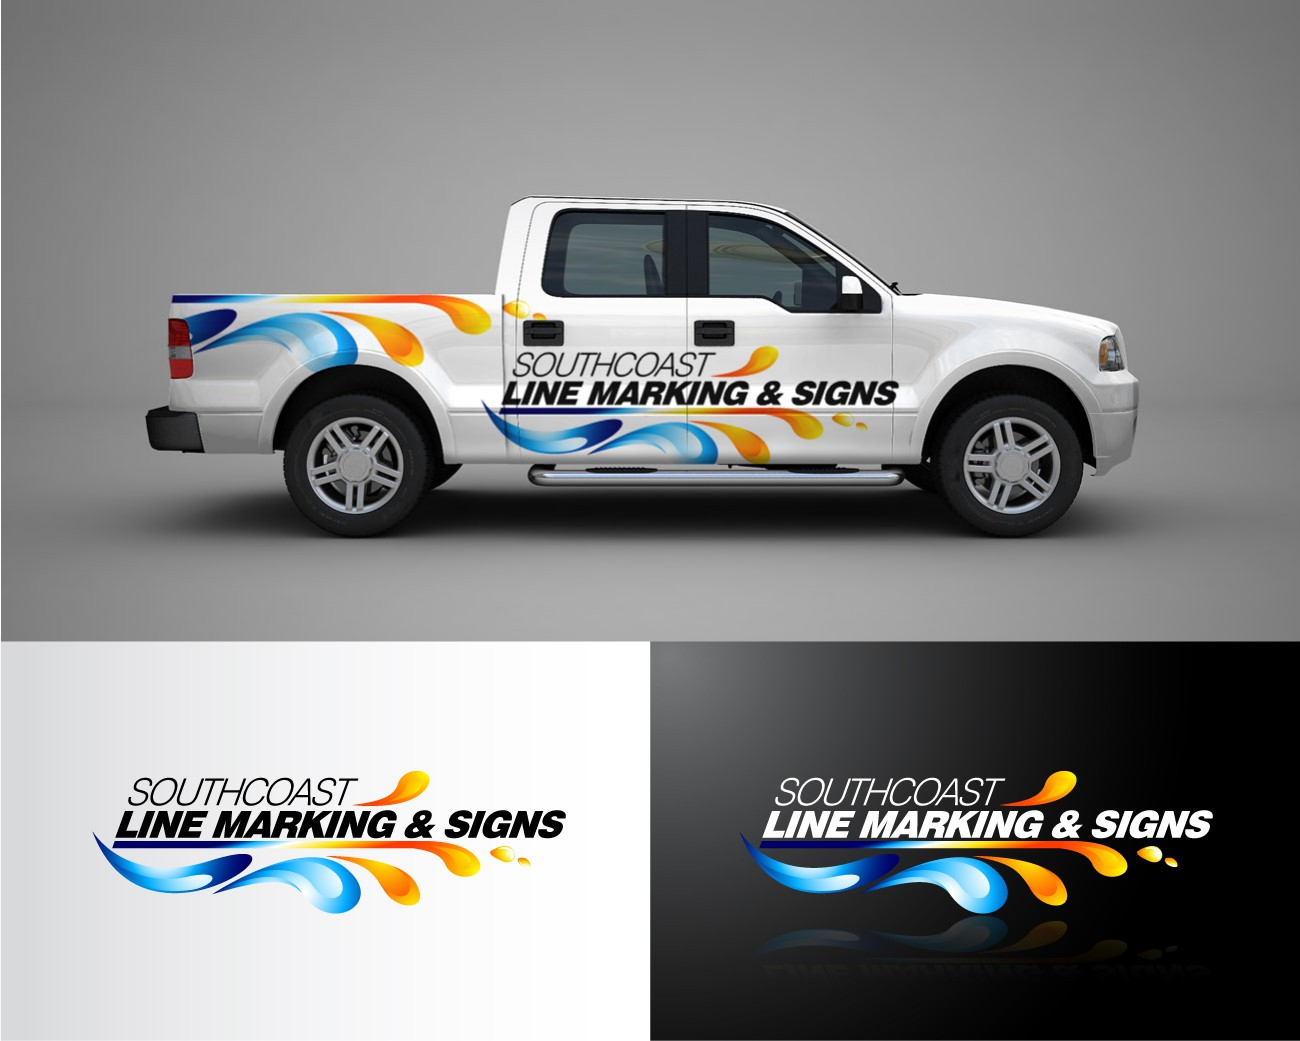 B creative! impress brush skilled signwriters with a new logo for a south coast business